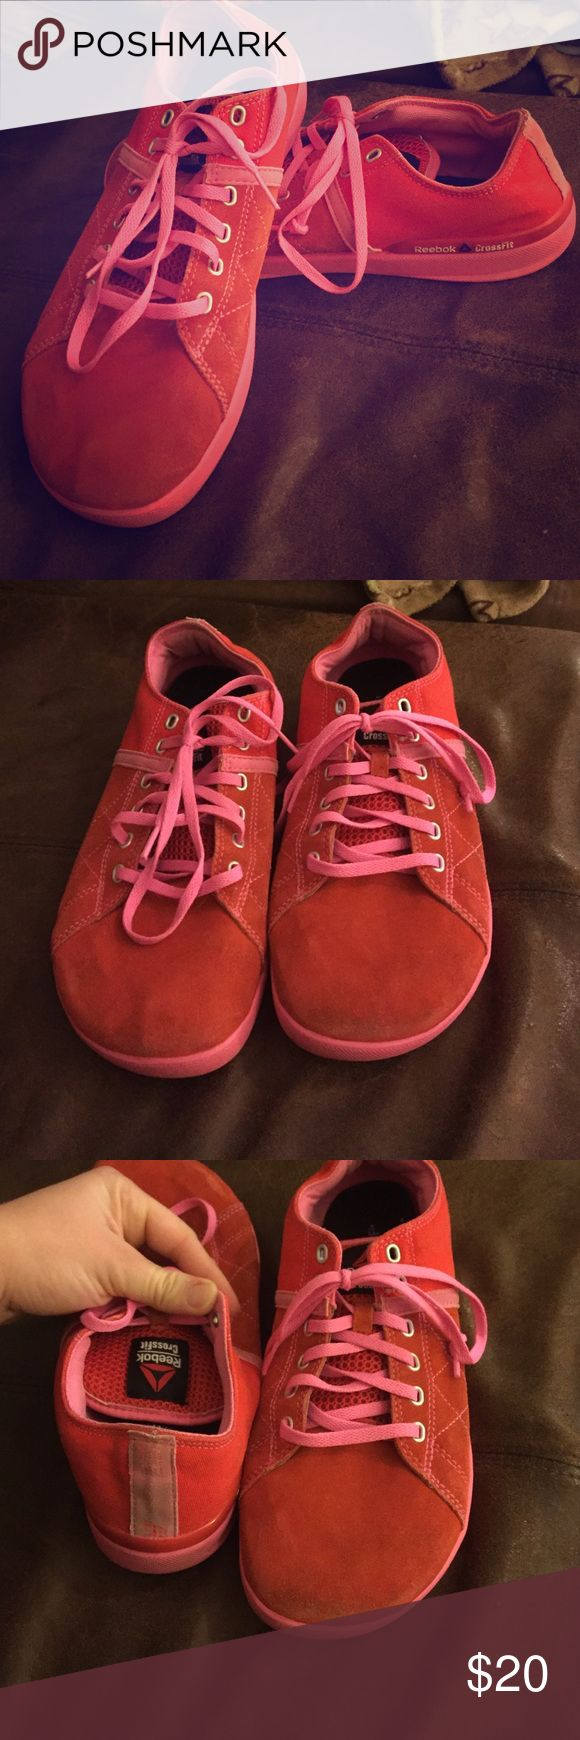 Crossfit shoes. Size 9 1/2 Pink crossfit shoes. Mainly used for deadlifting. The bottoms are flat. Size 9 1/2 Reebok Shoes Sneakers